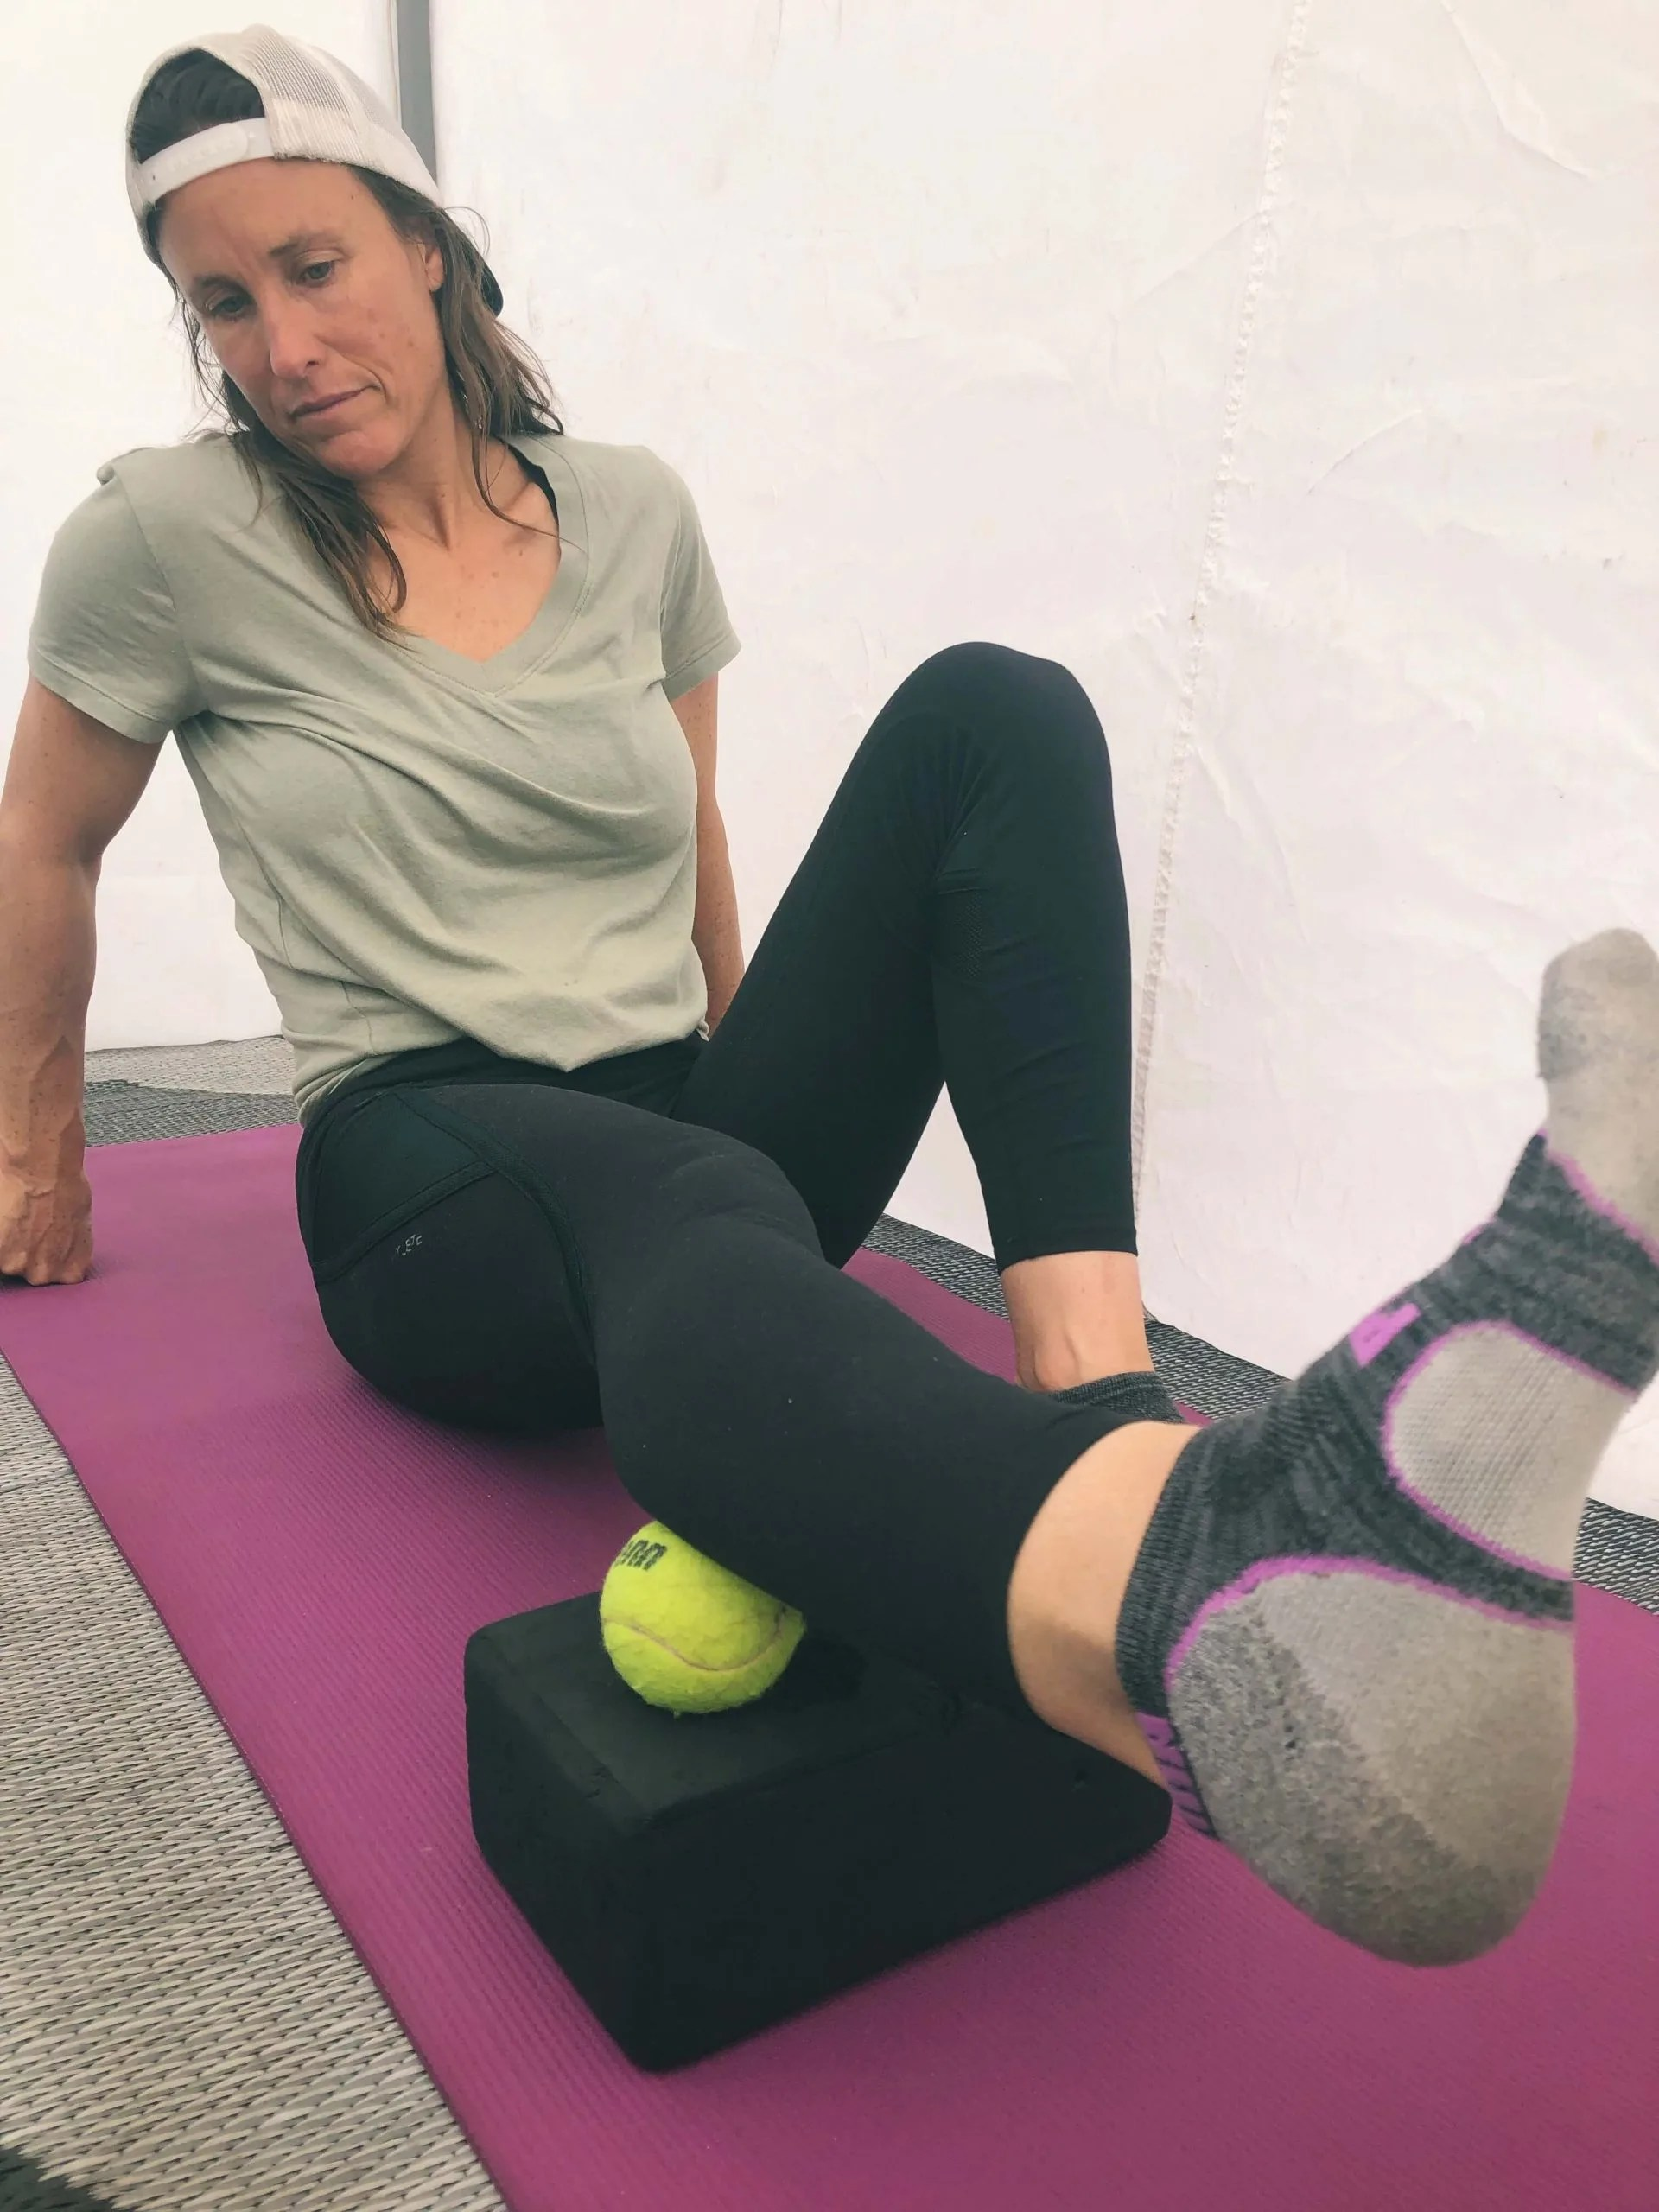 myofascial release with tennis ball